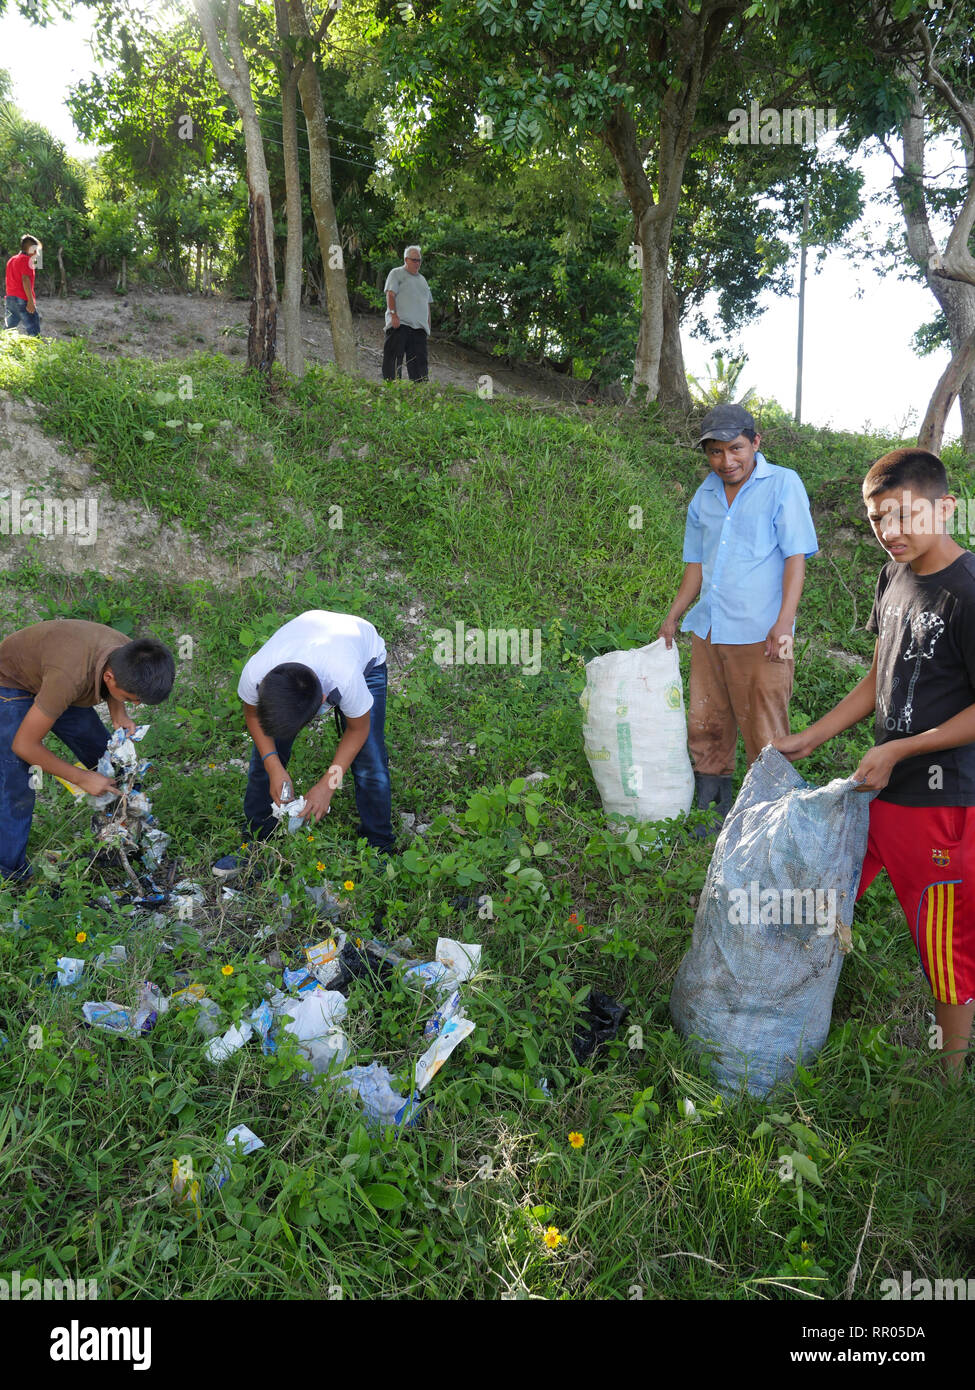 GUATEMALA  Rescue of the natural ecocsystem around Lake Nacanche, near El Remate, Peten. The Remate Parish Leadership and Formation team picking up litter, especially plastic, from the lake. Local children recruited to help with the clean-up operation. - Stock Image